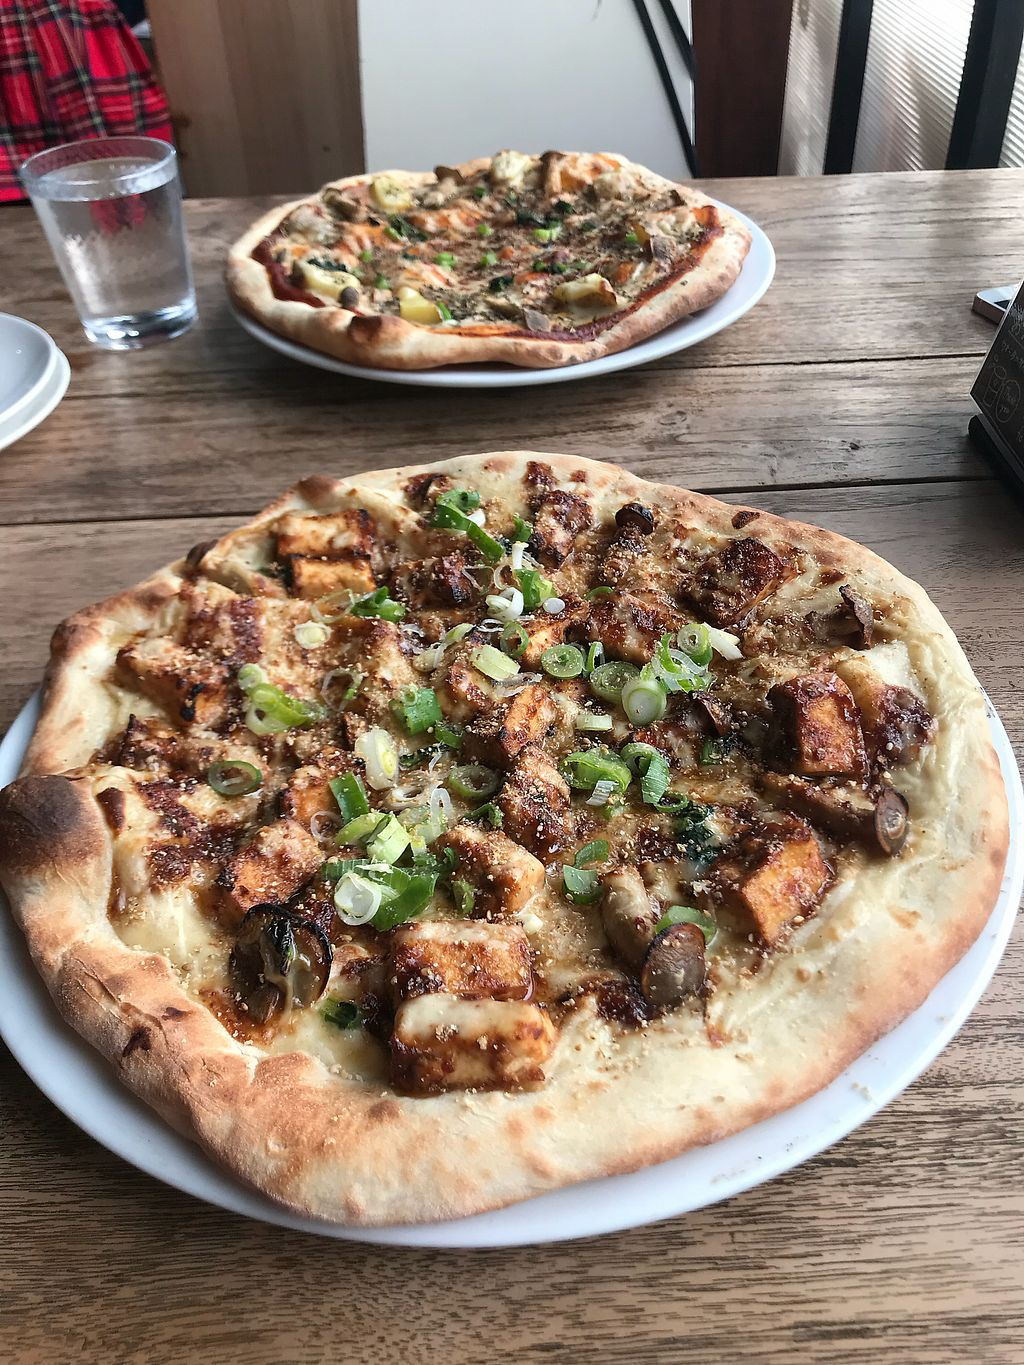 """Photo of Vegans Cafe and Restaurant  by <a href=""""/members/profile/kat.ross"""">kat.ross</a> <br/>pizza! <br/> March 22, 2018  - <a href='/contact/abuse/image/29114/374232'>Report</a>"""